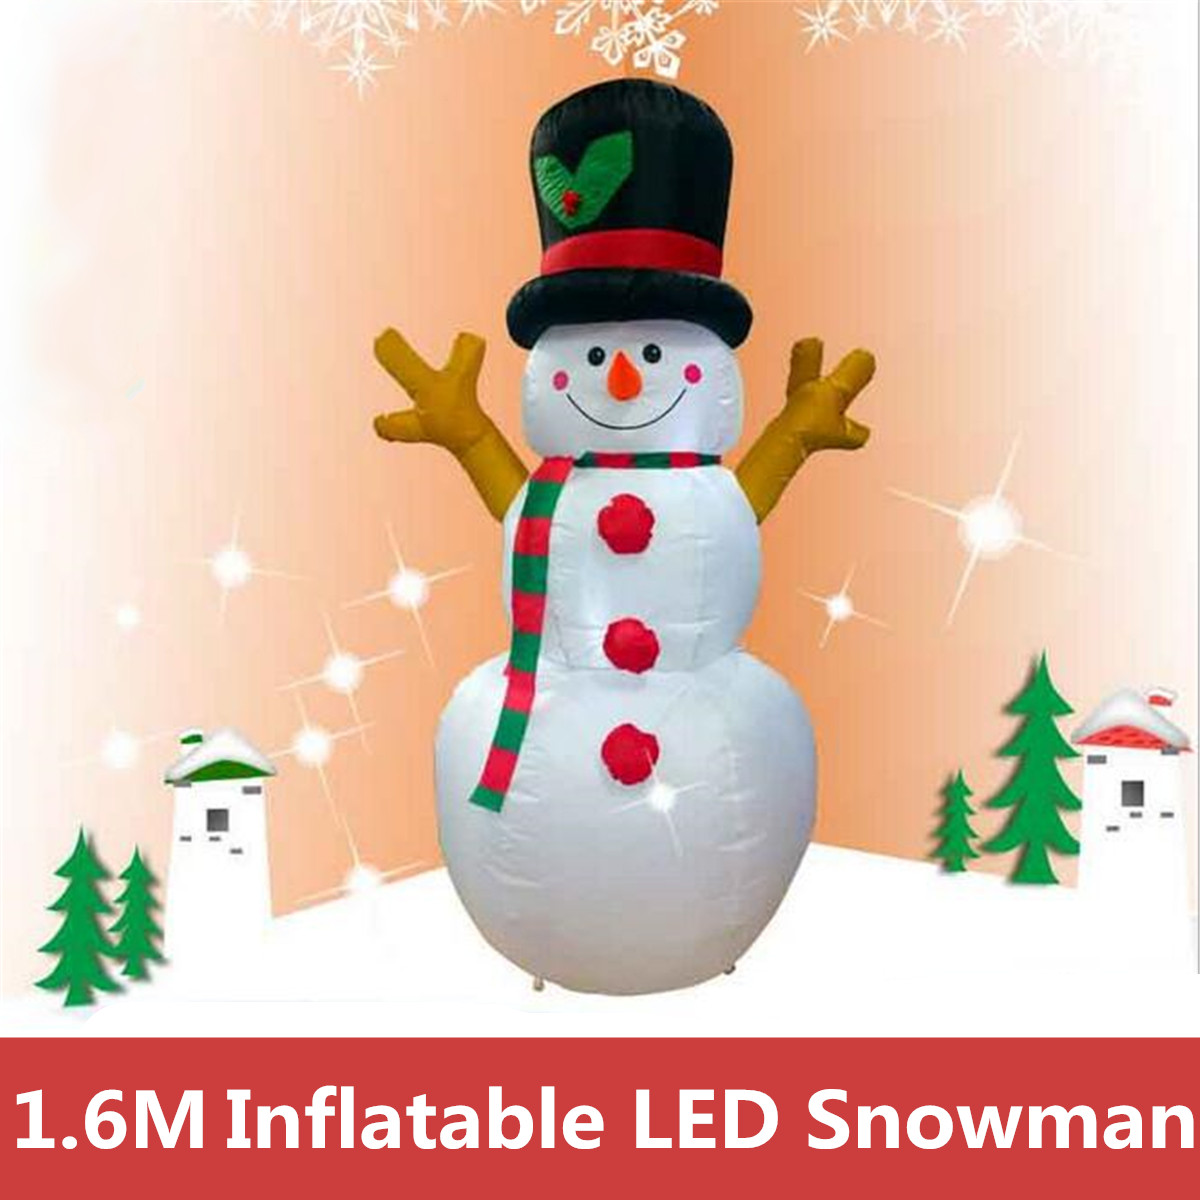 1.6M Christmas Snowman LED Inflatable Model Snowman Doll Broom Cover Christmas Decoration Dressing